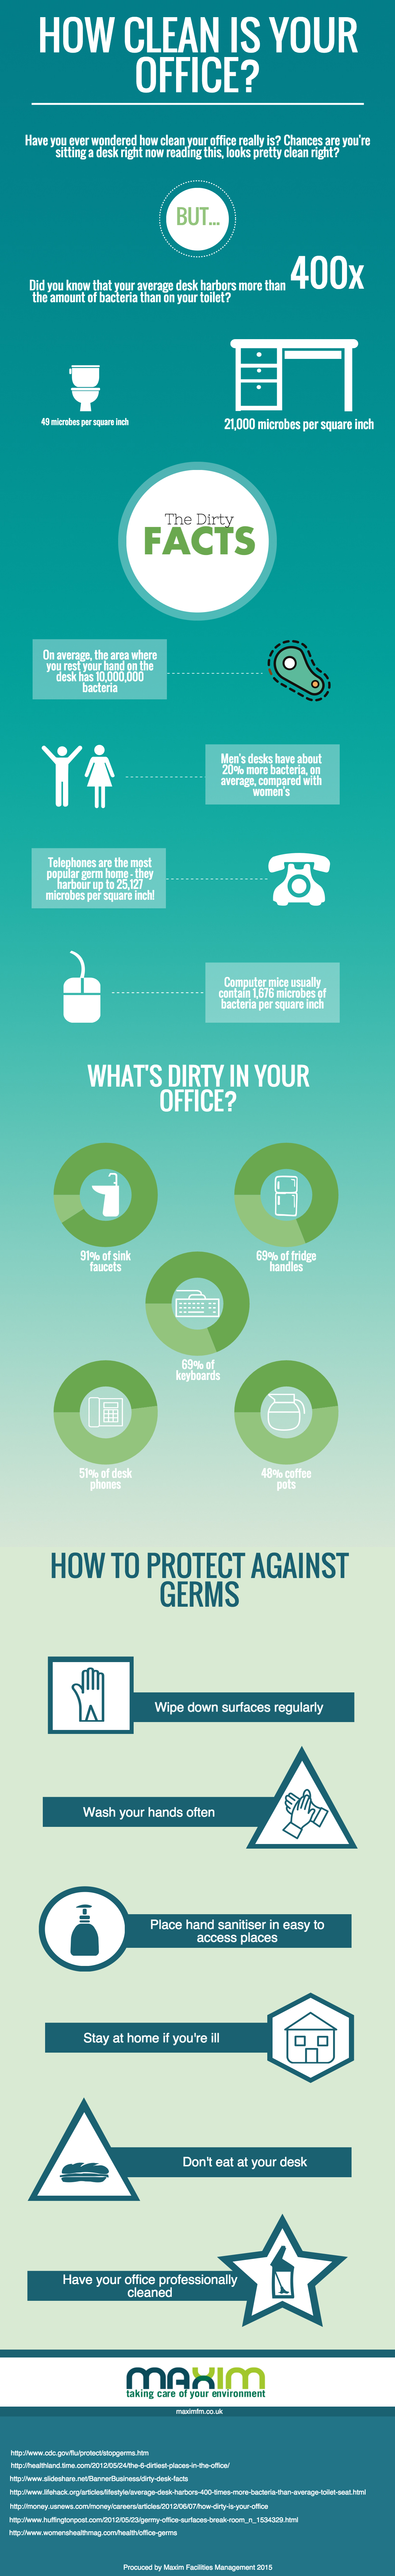 How Clean is your office infographic